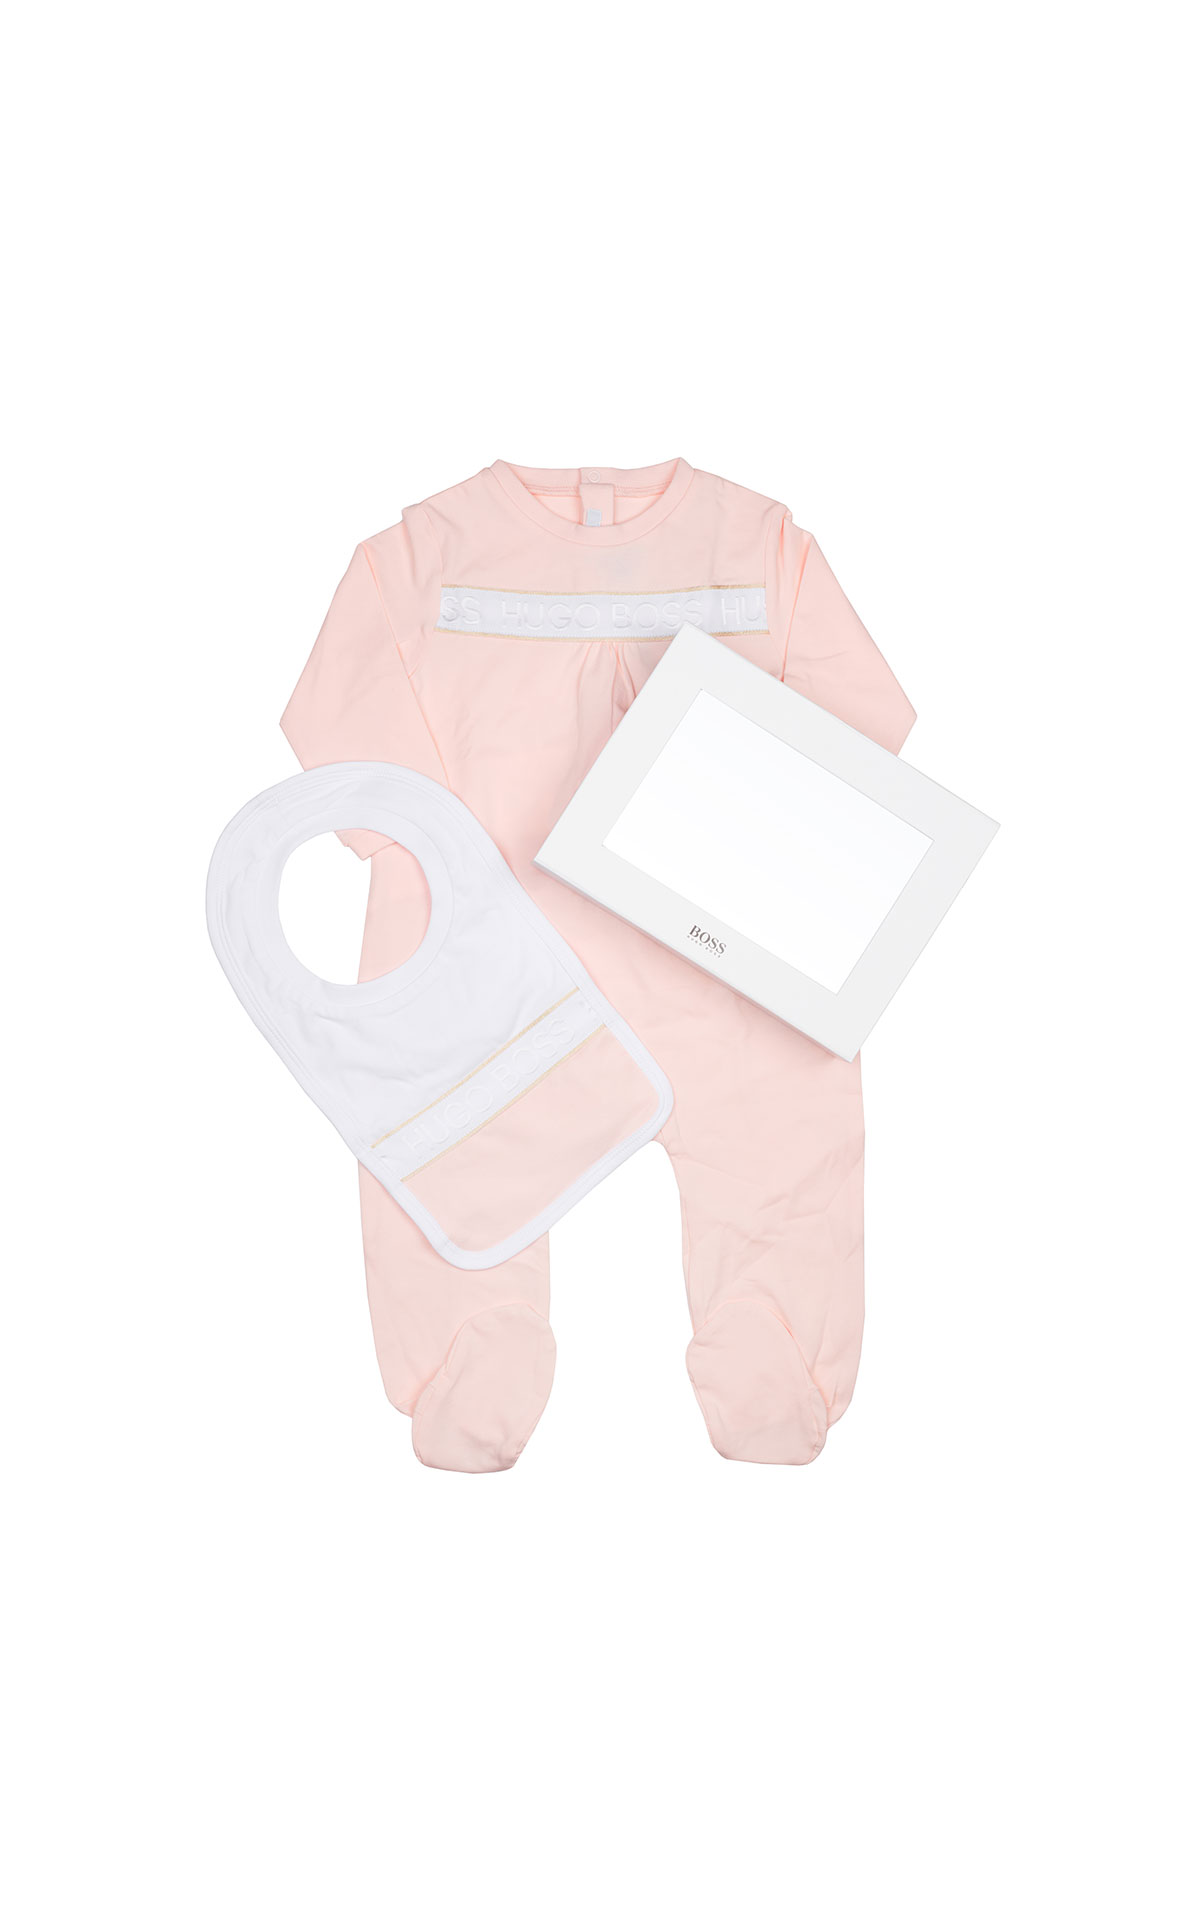 BOSS Kids 18 month girl night set from Bicester Village